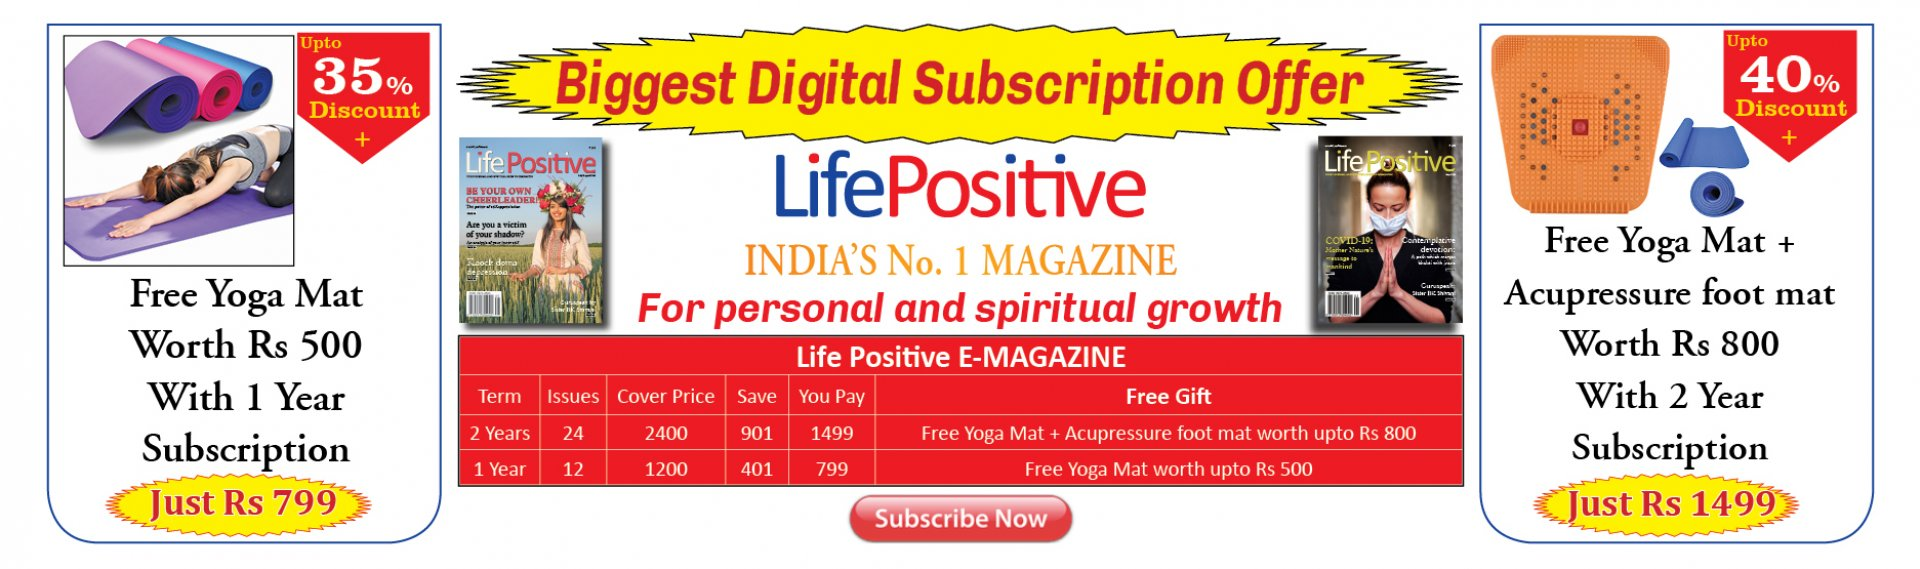 New-Offer-Life-Positive